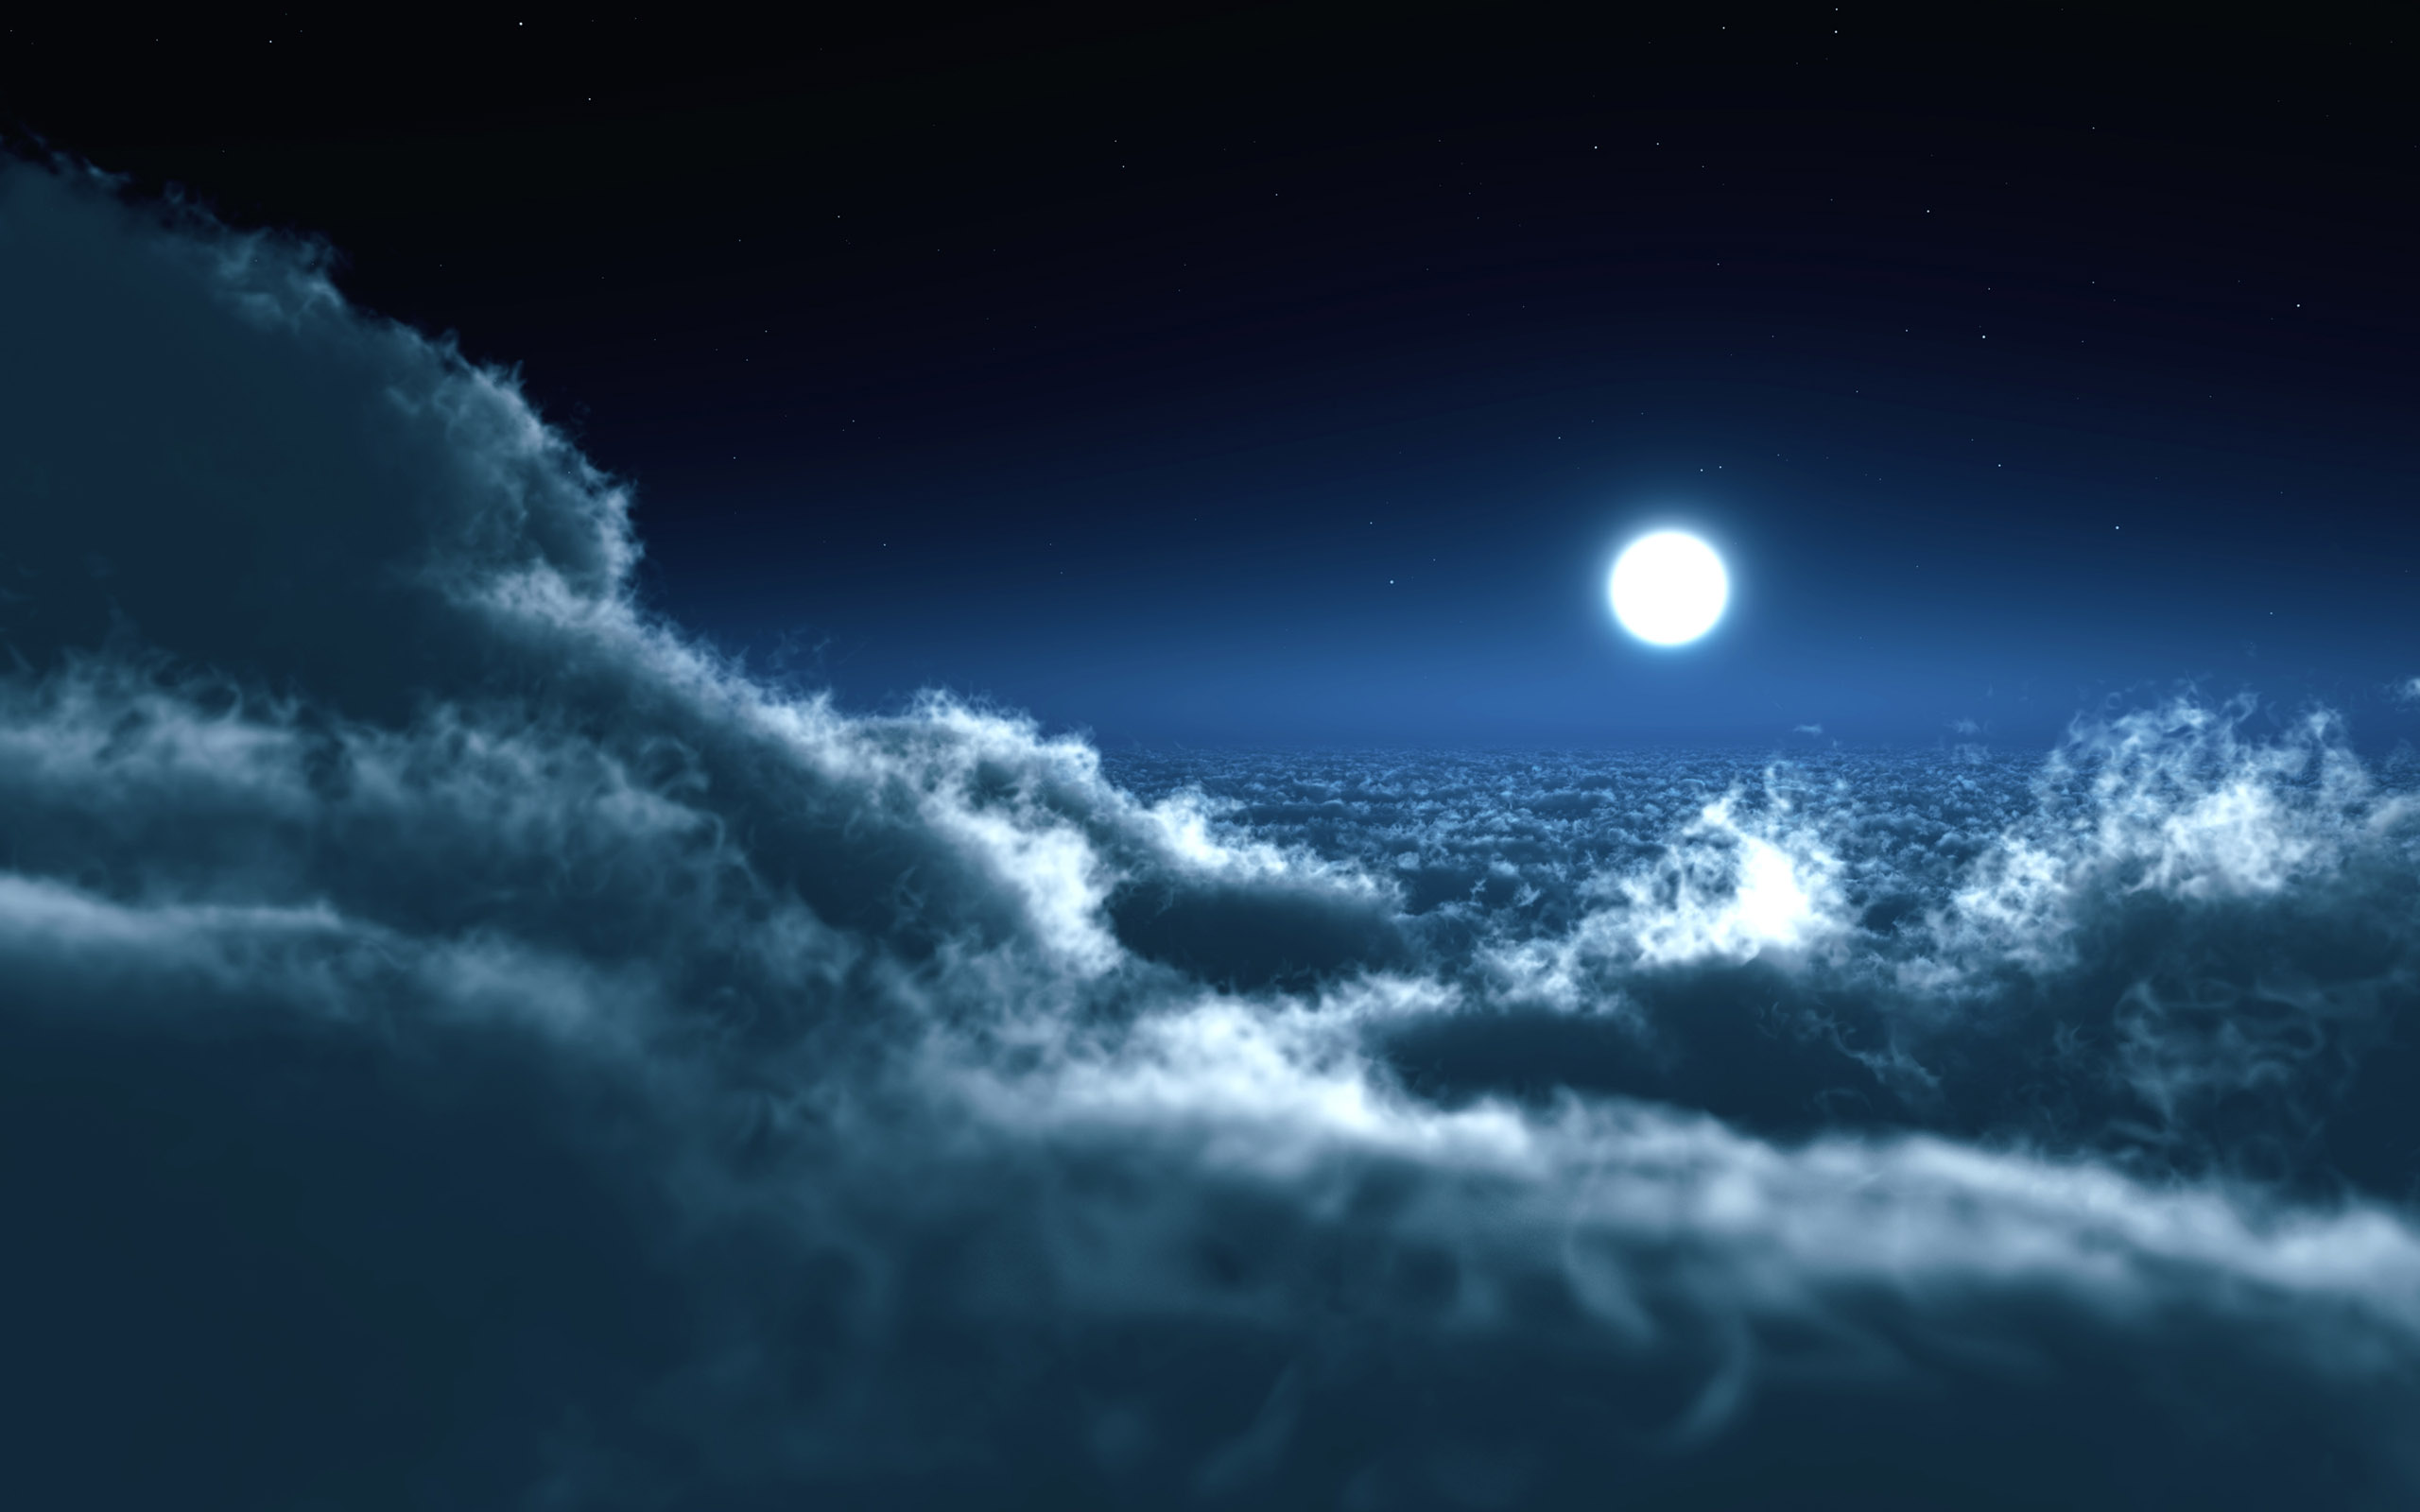 Moon Over Clouds 852.4 Kb